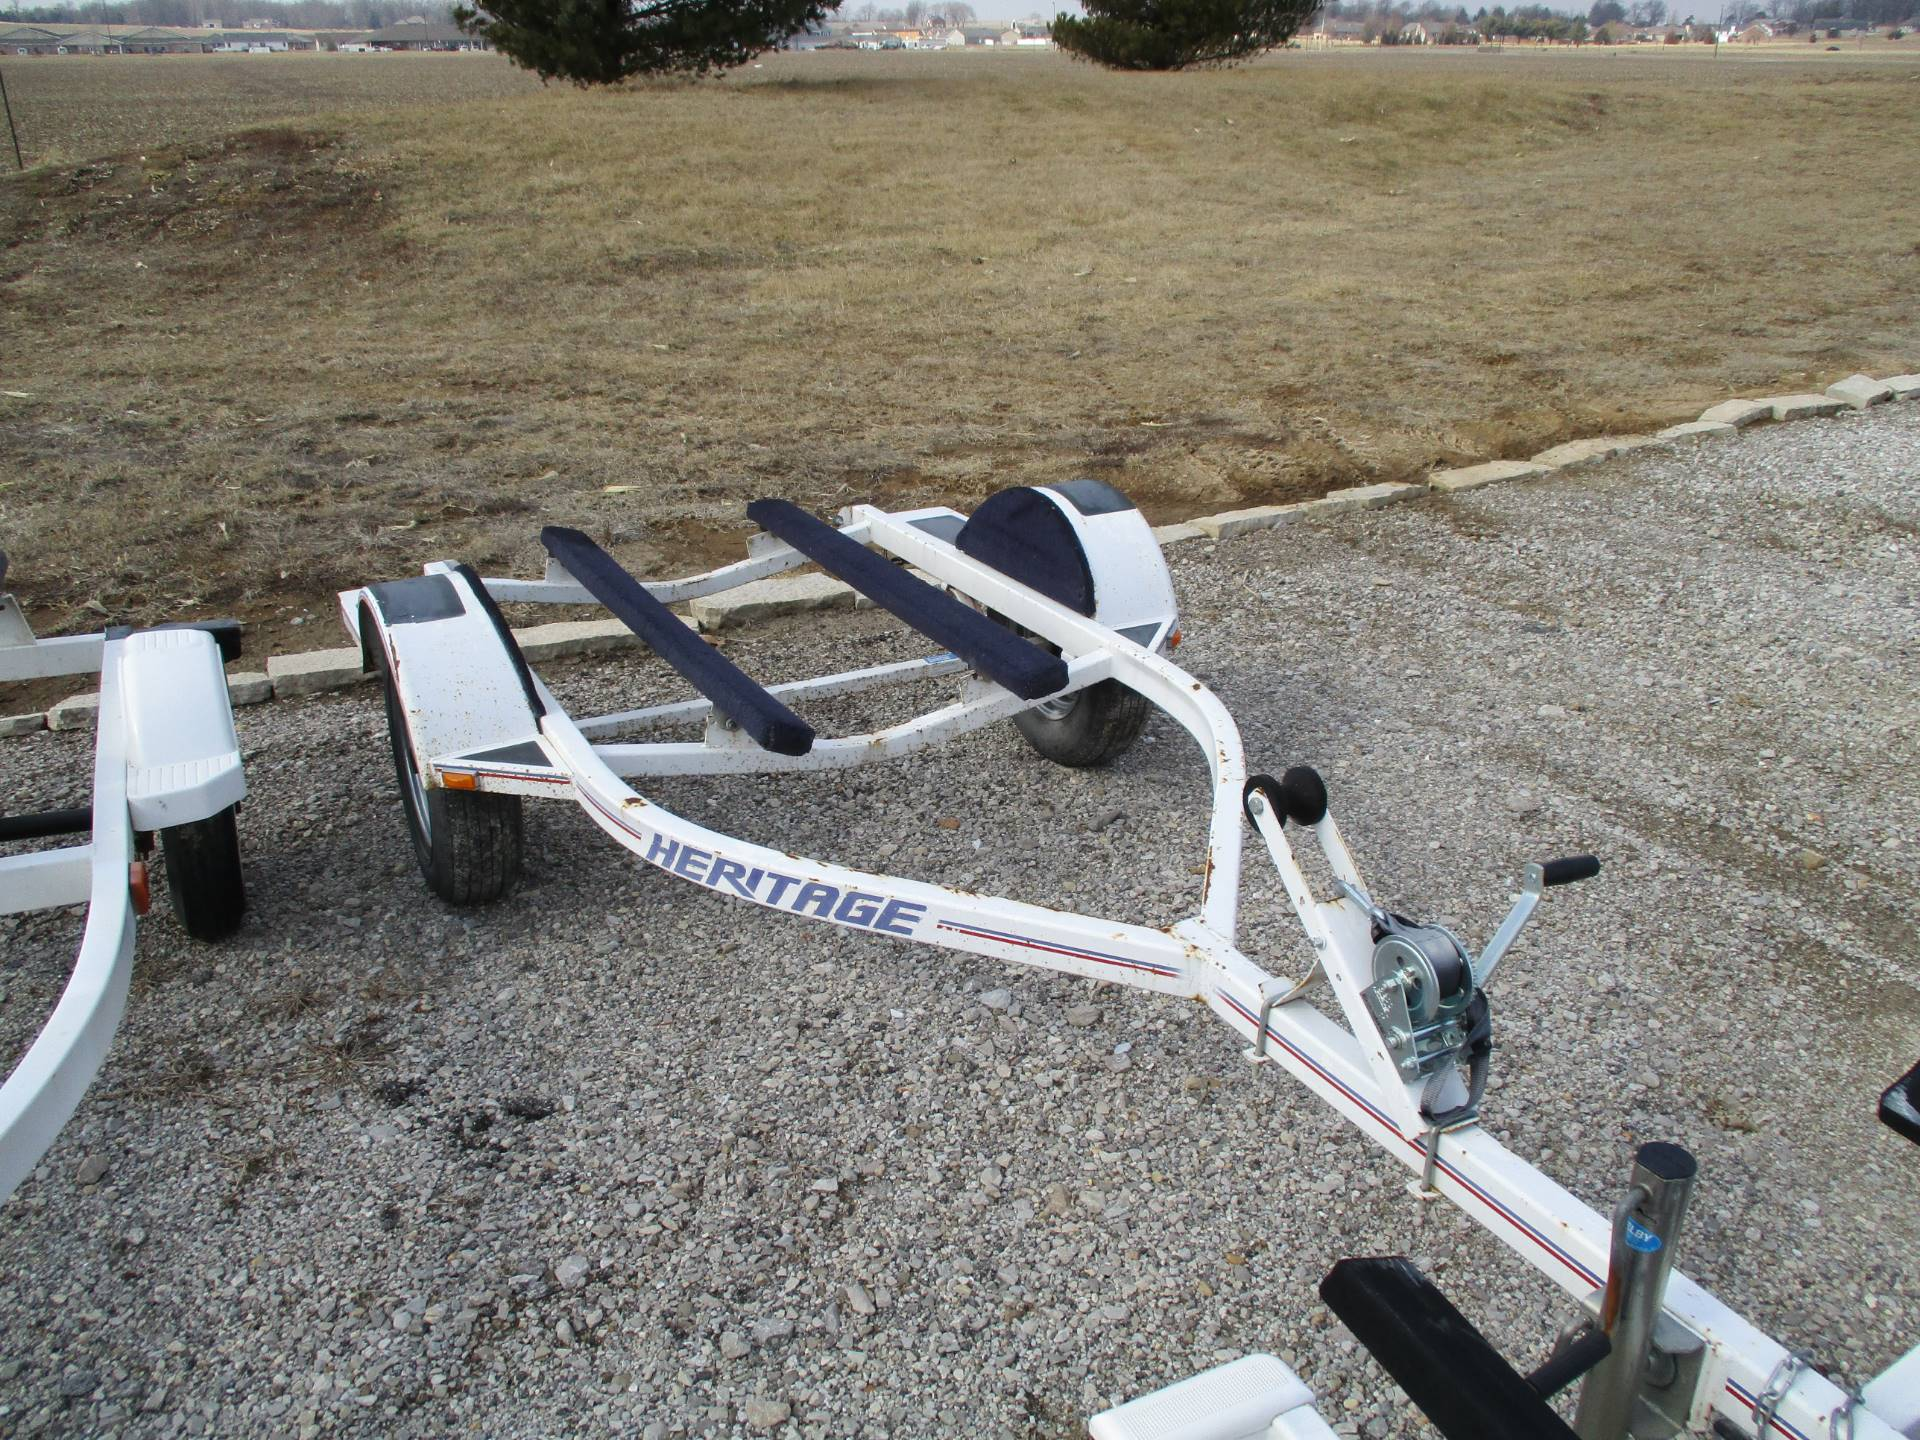 1996 heritage jet ski single in Highland, Illinois